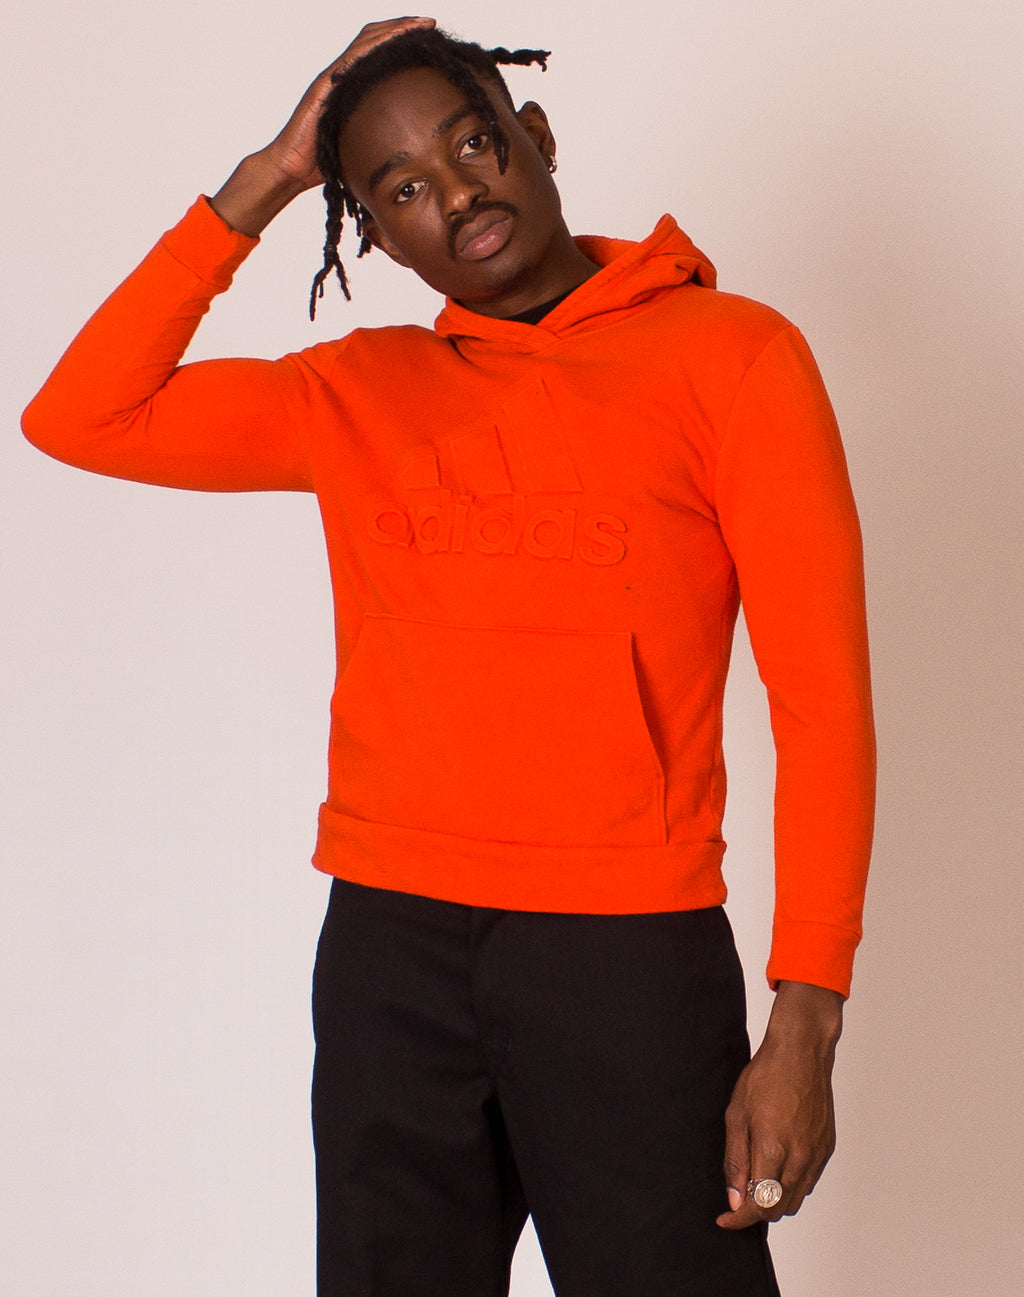 ADIDAS EMBOSSED LOGO ORANGE HOODY